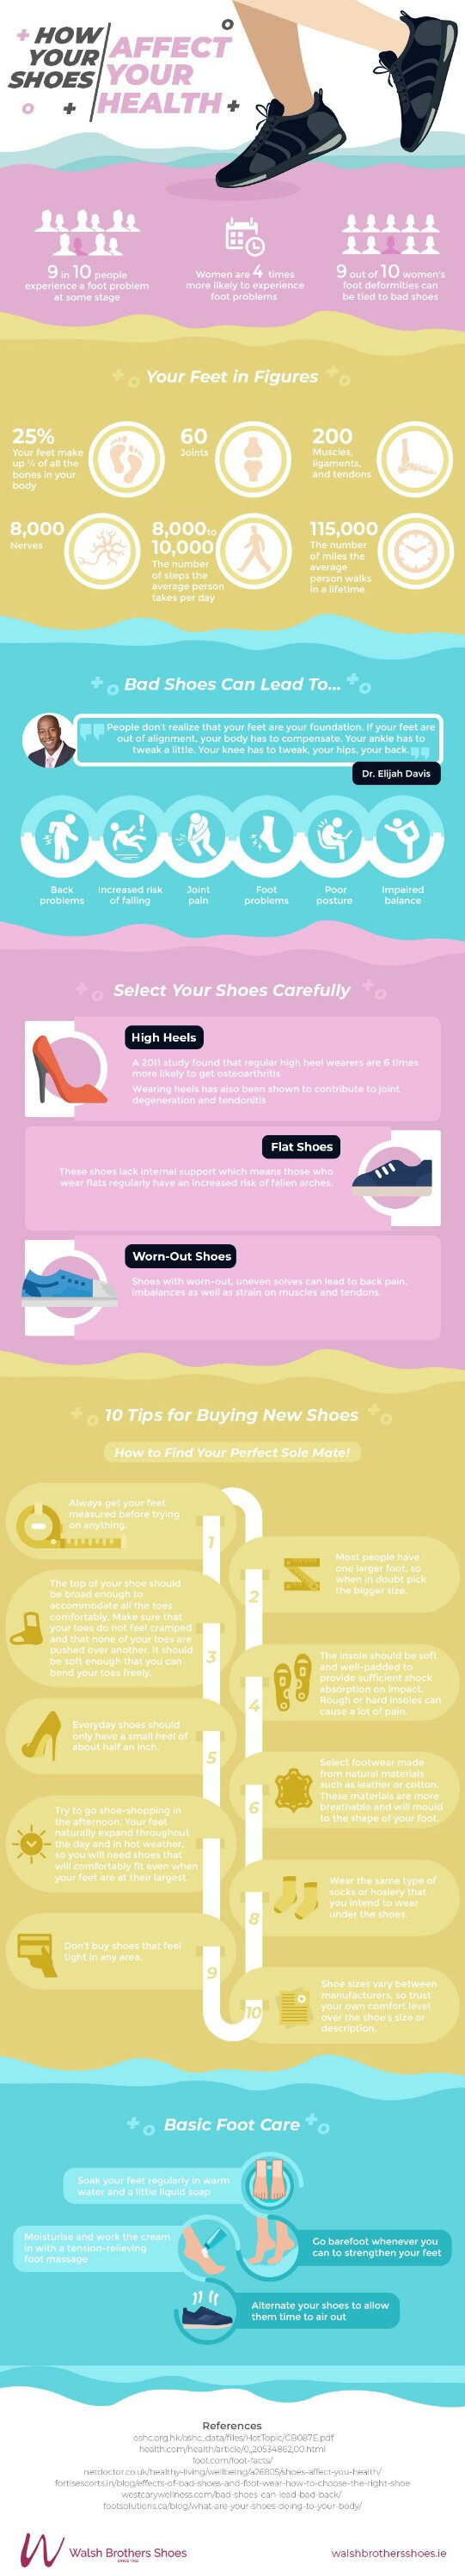 Foot problems: How Your Shoes Affect Your Health (Infographic)